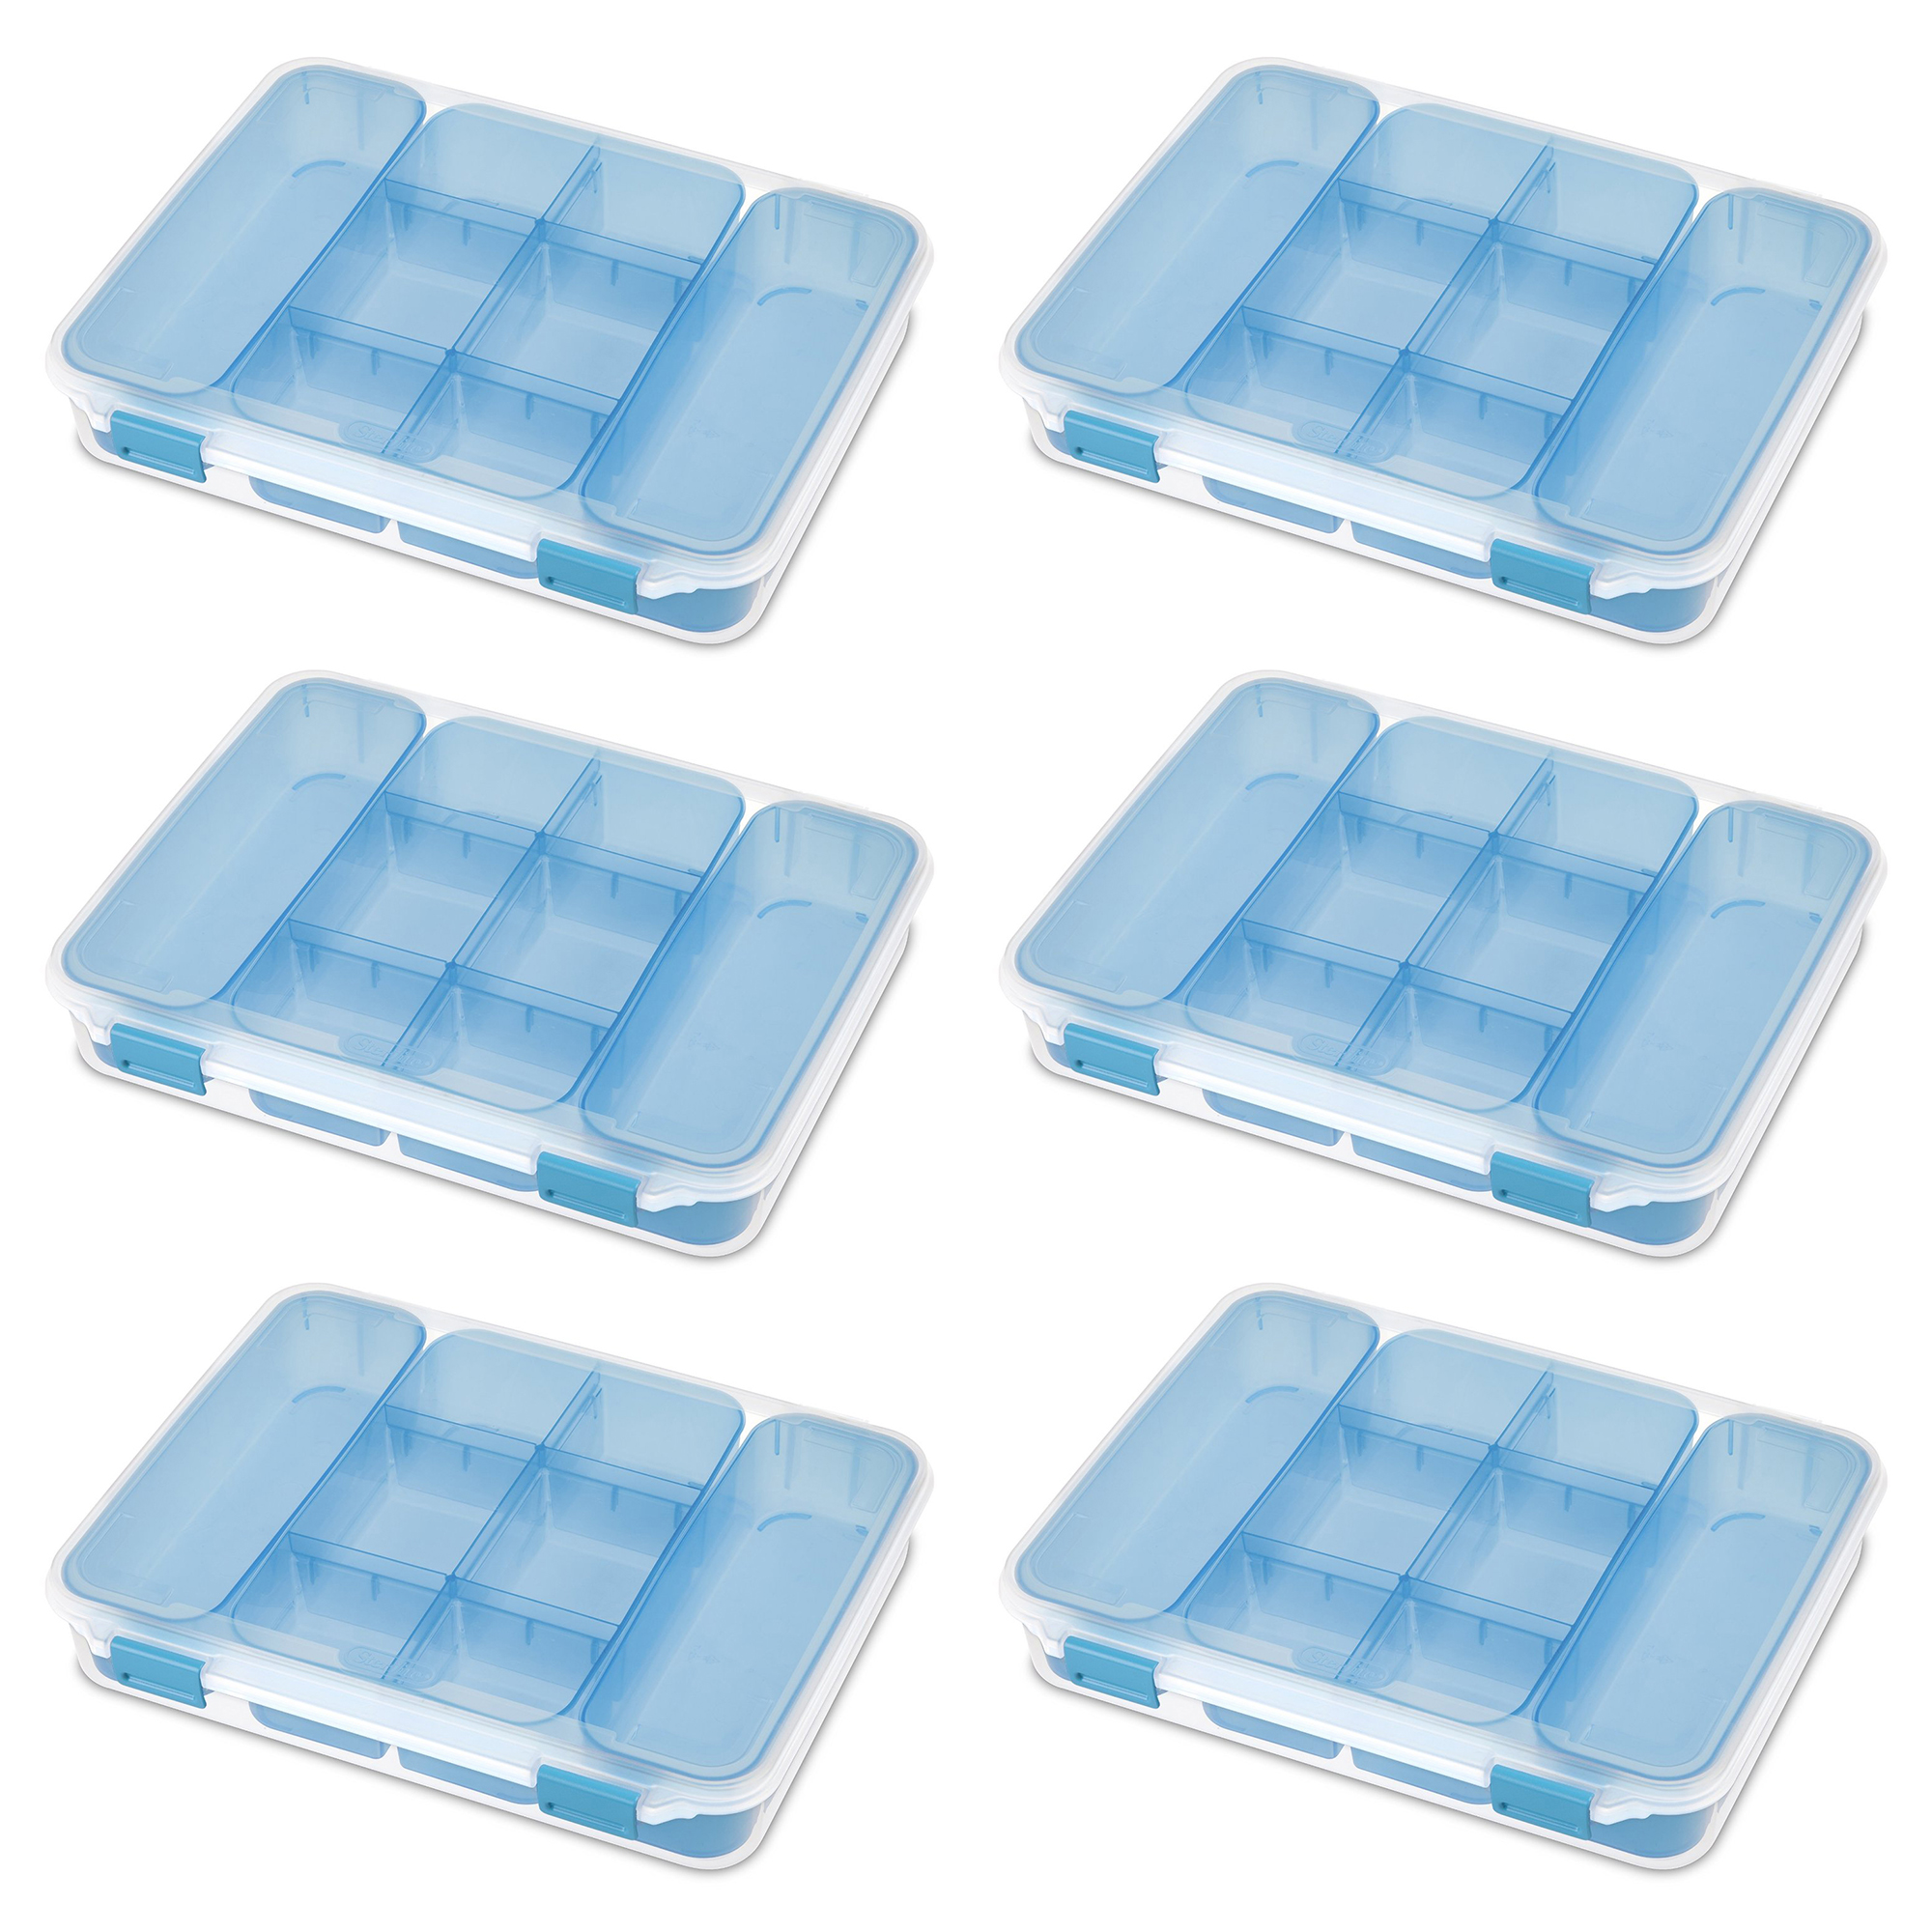 Sterilite Divided Storage Case for Crafting and Hardware (6 Pack) | 14028606